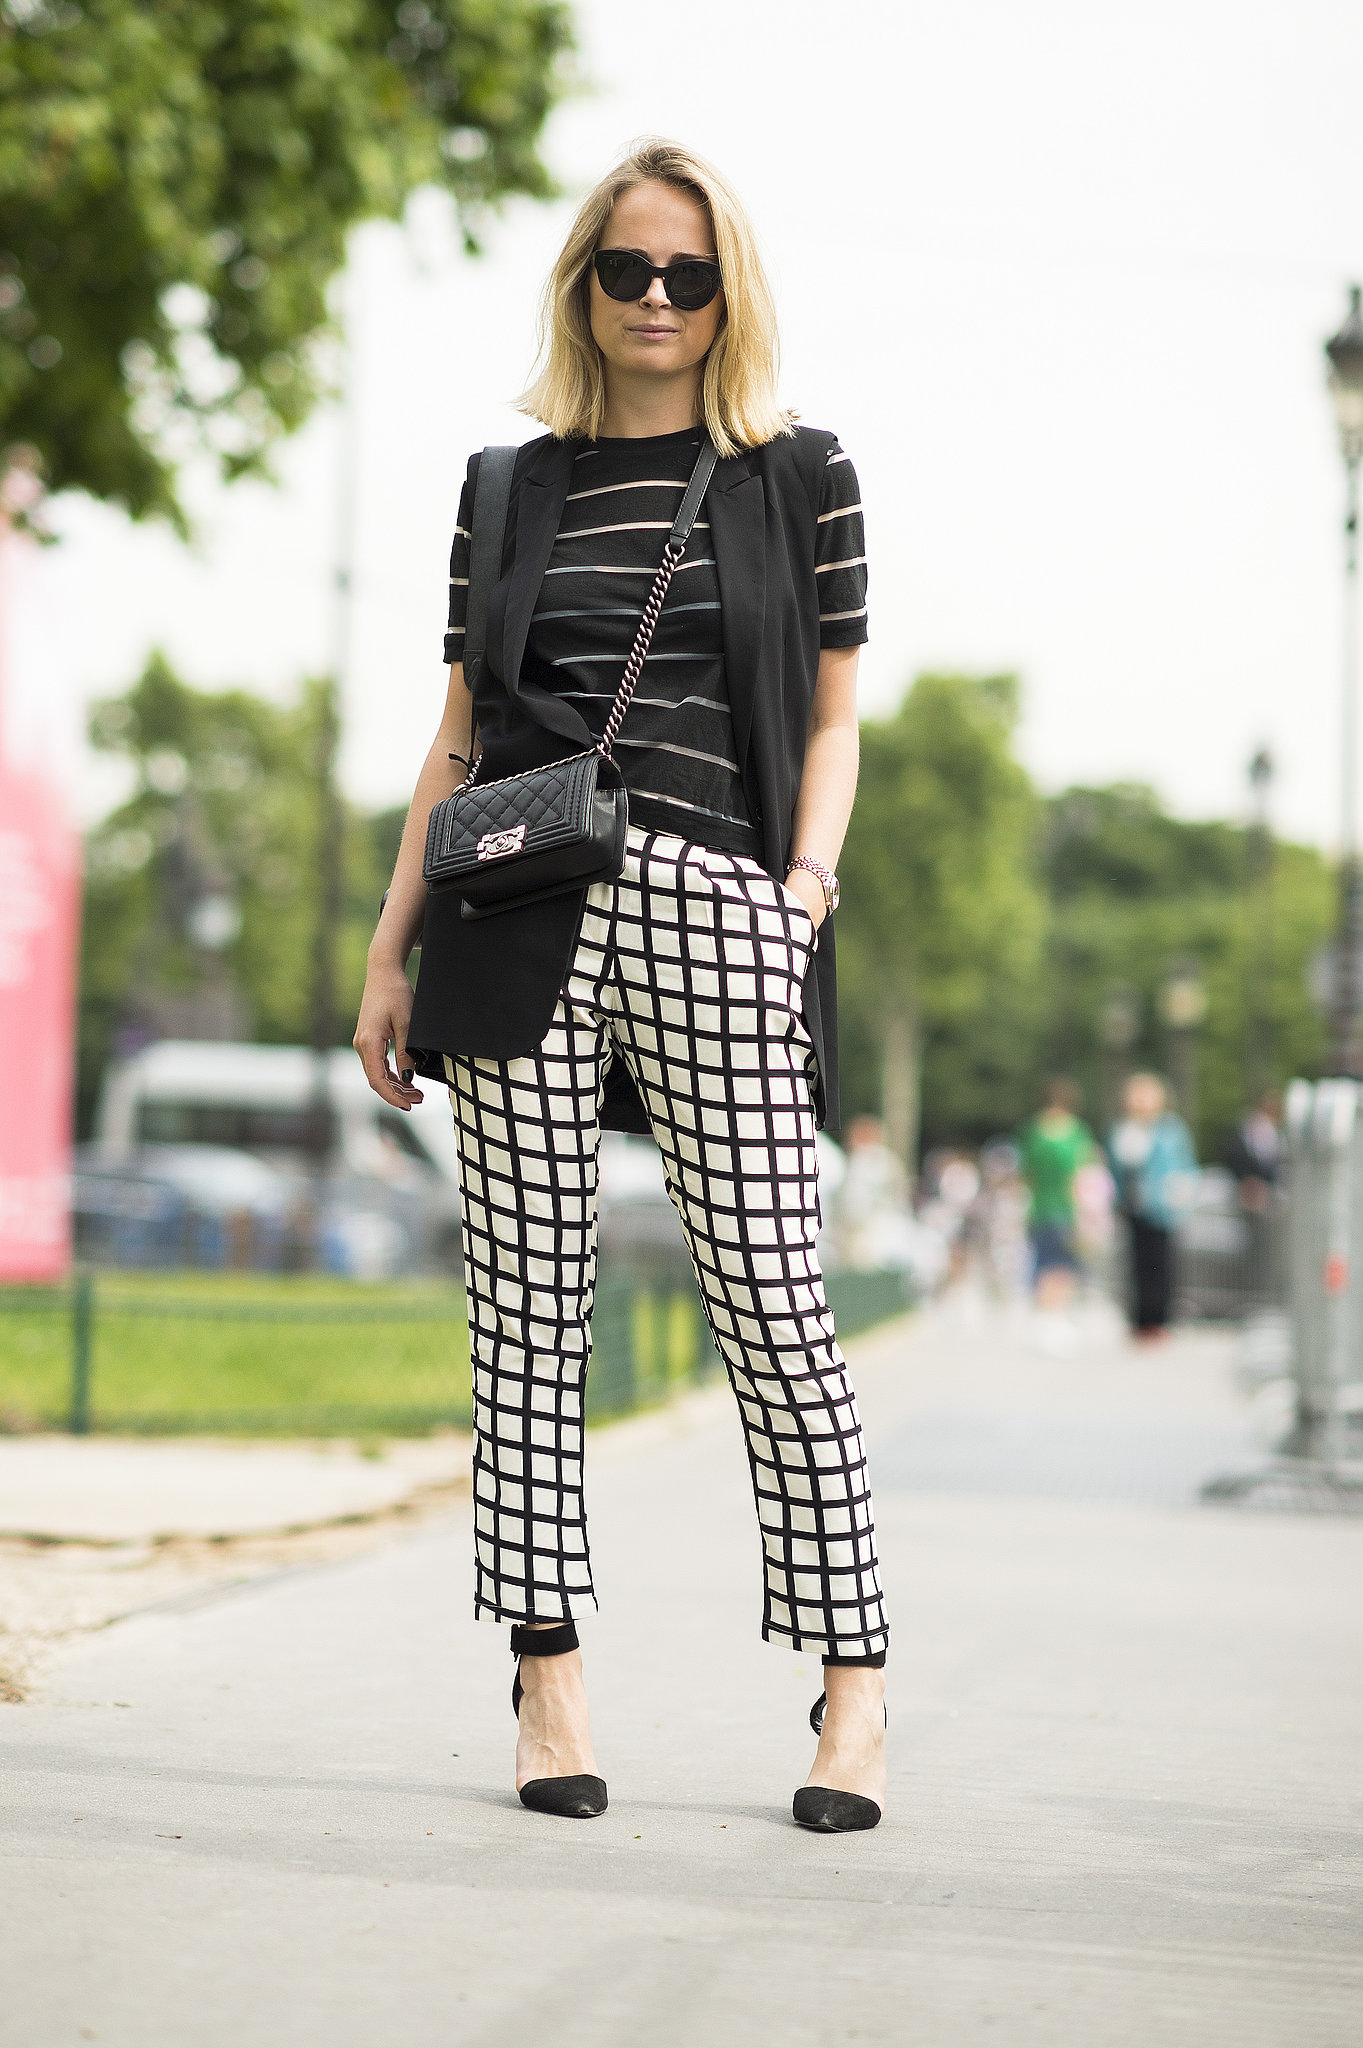 Let your pants be the statement piece, like this showgoer. Source: Le 21ème | Adam Katz Sinding